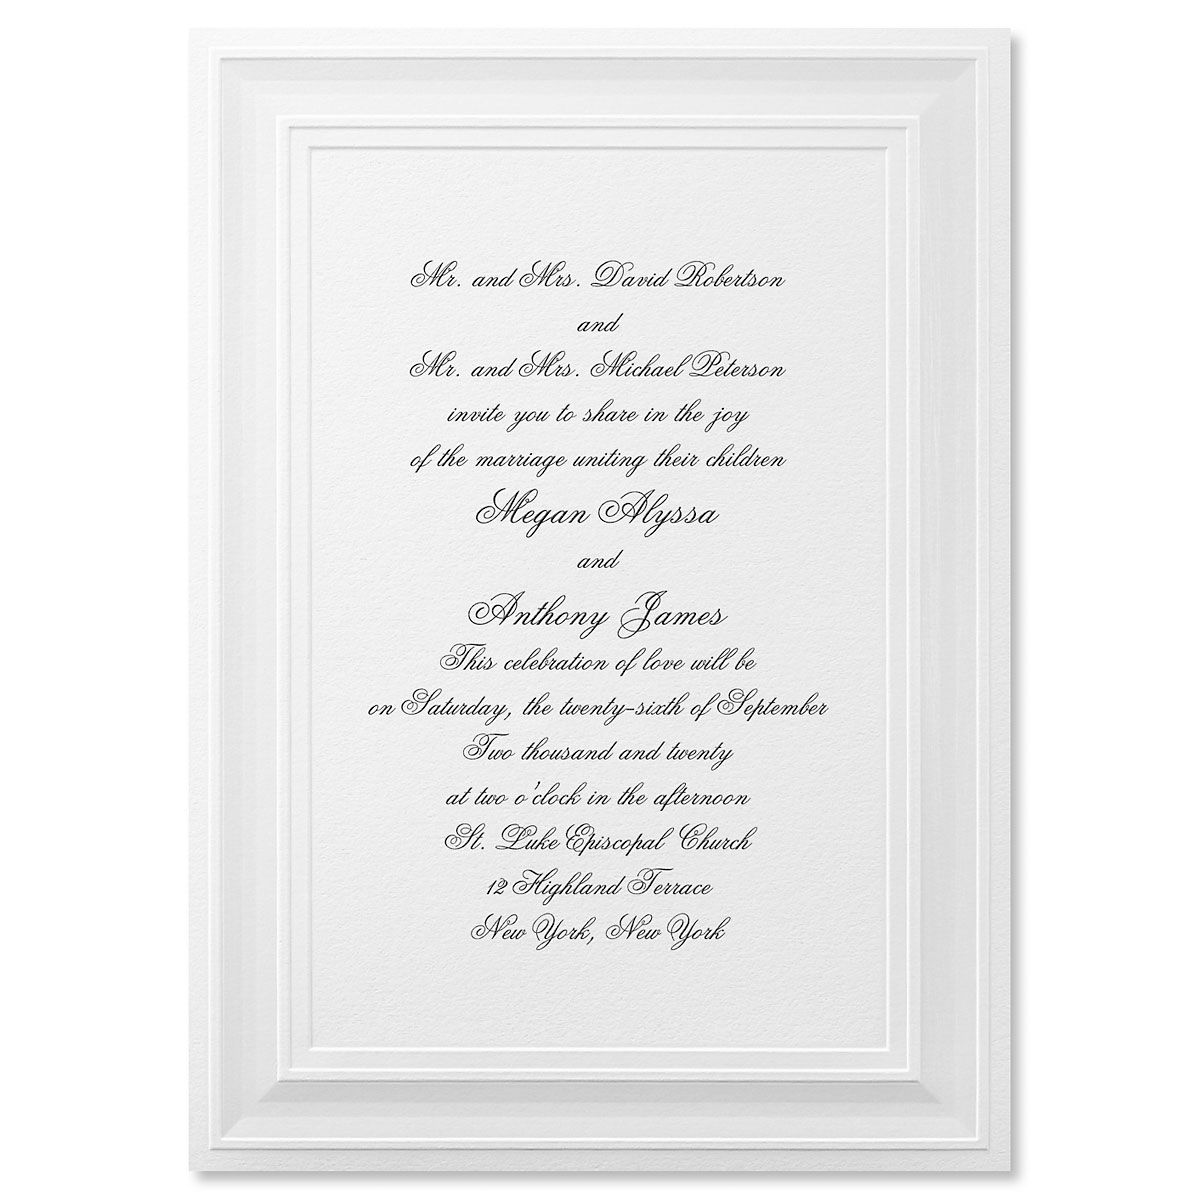 A Royal Frame White Invitation